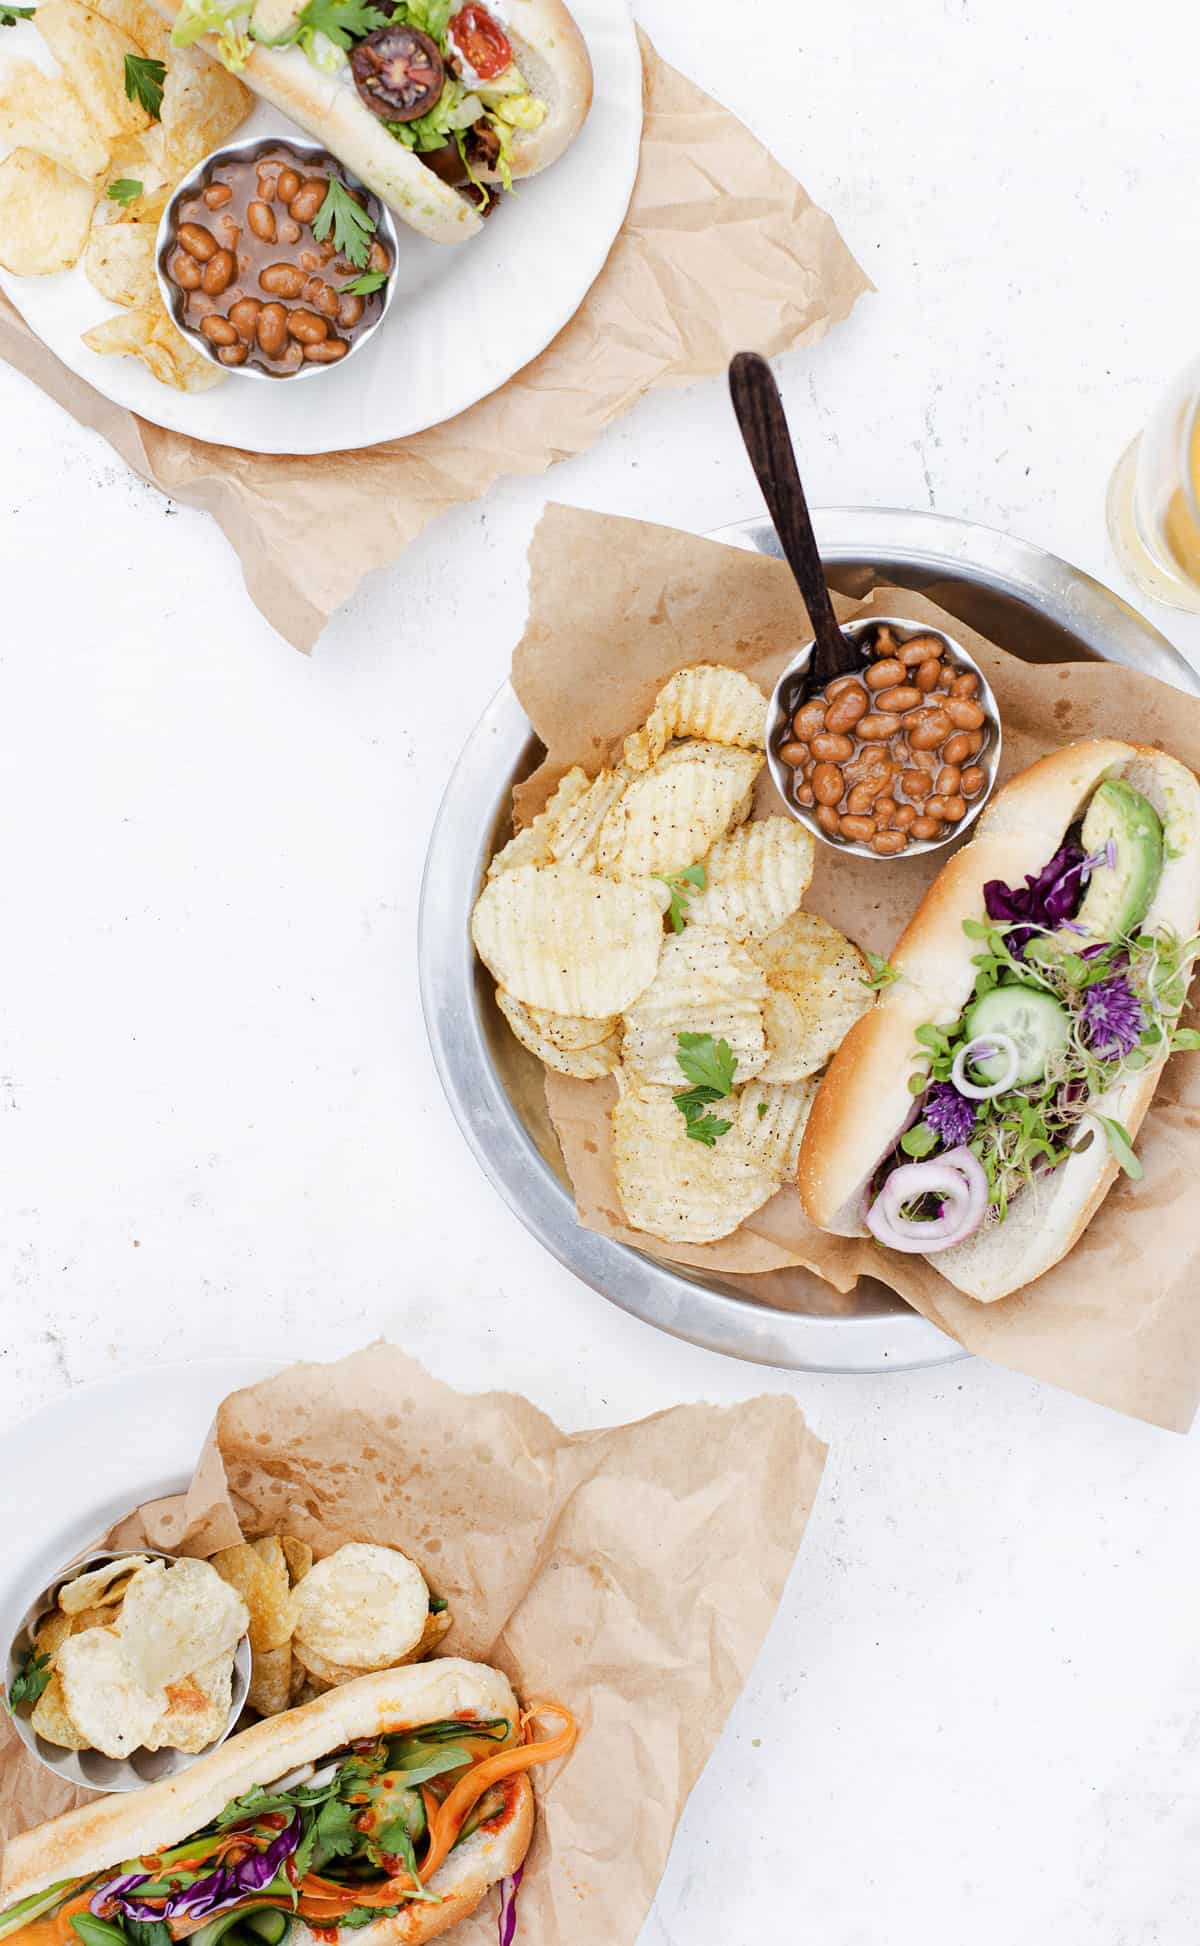 A variety of gourmet hot dog topped hot dogs with sides